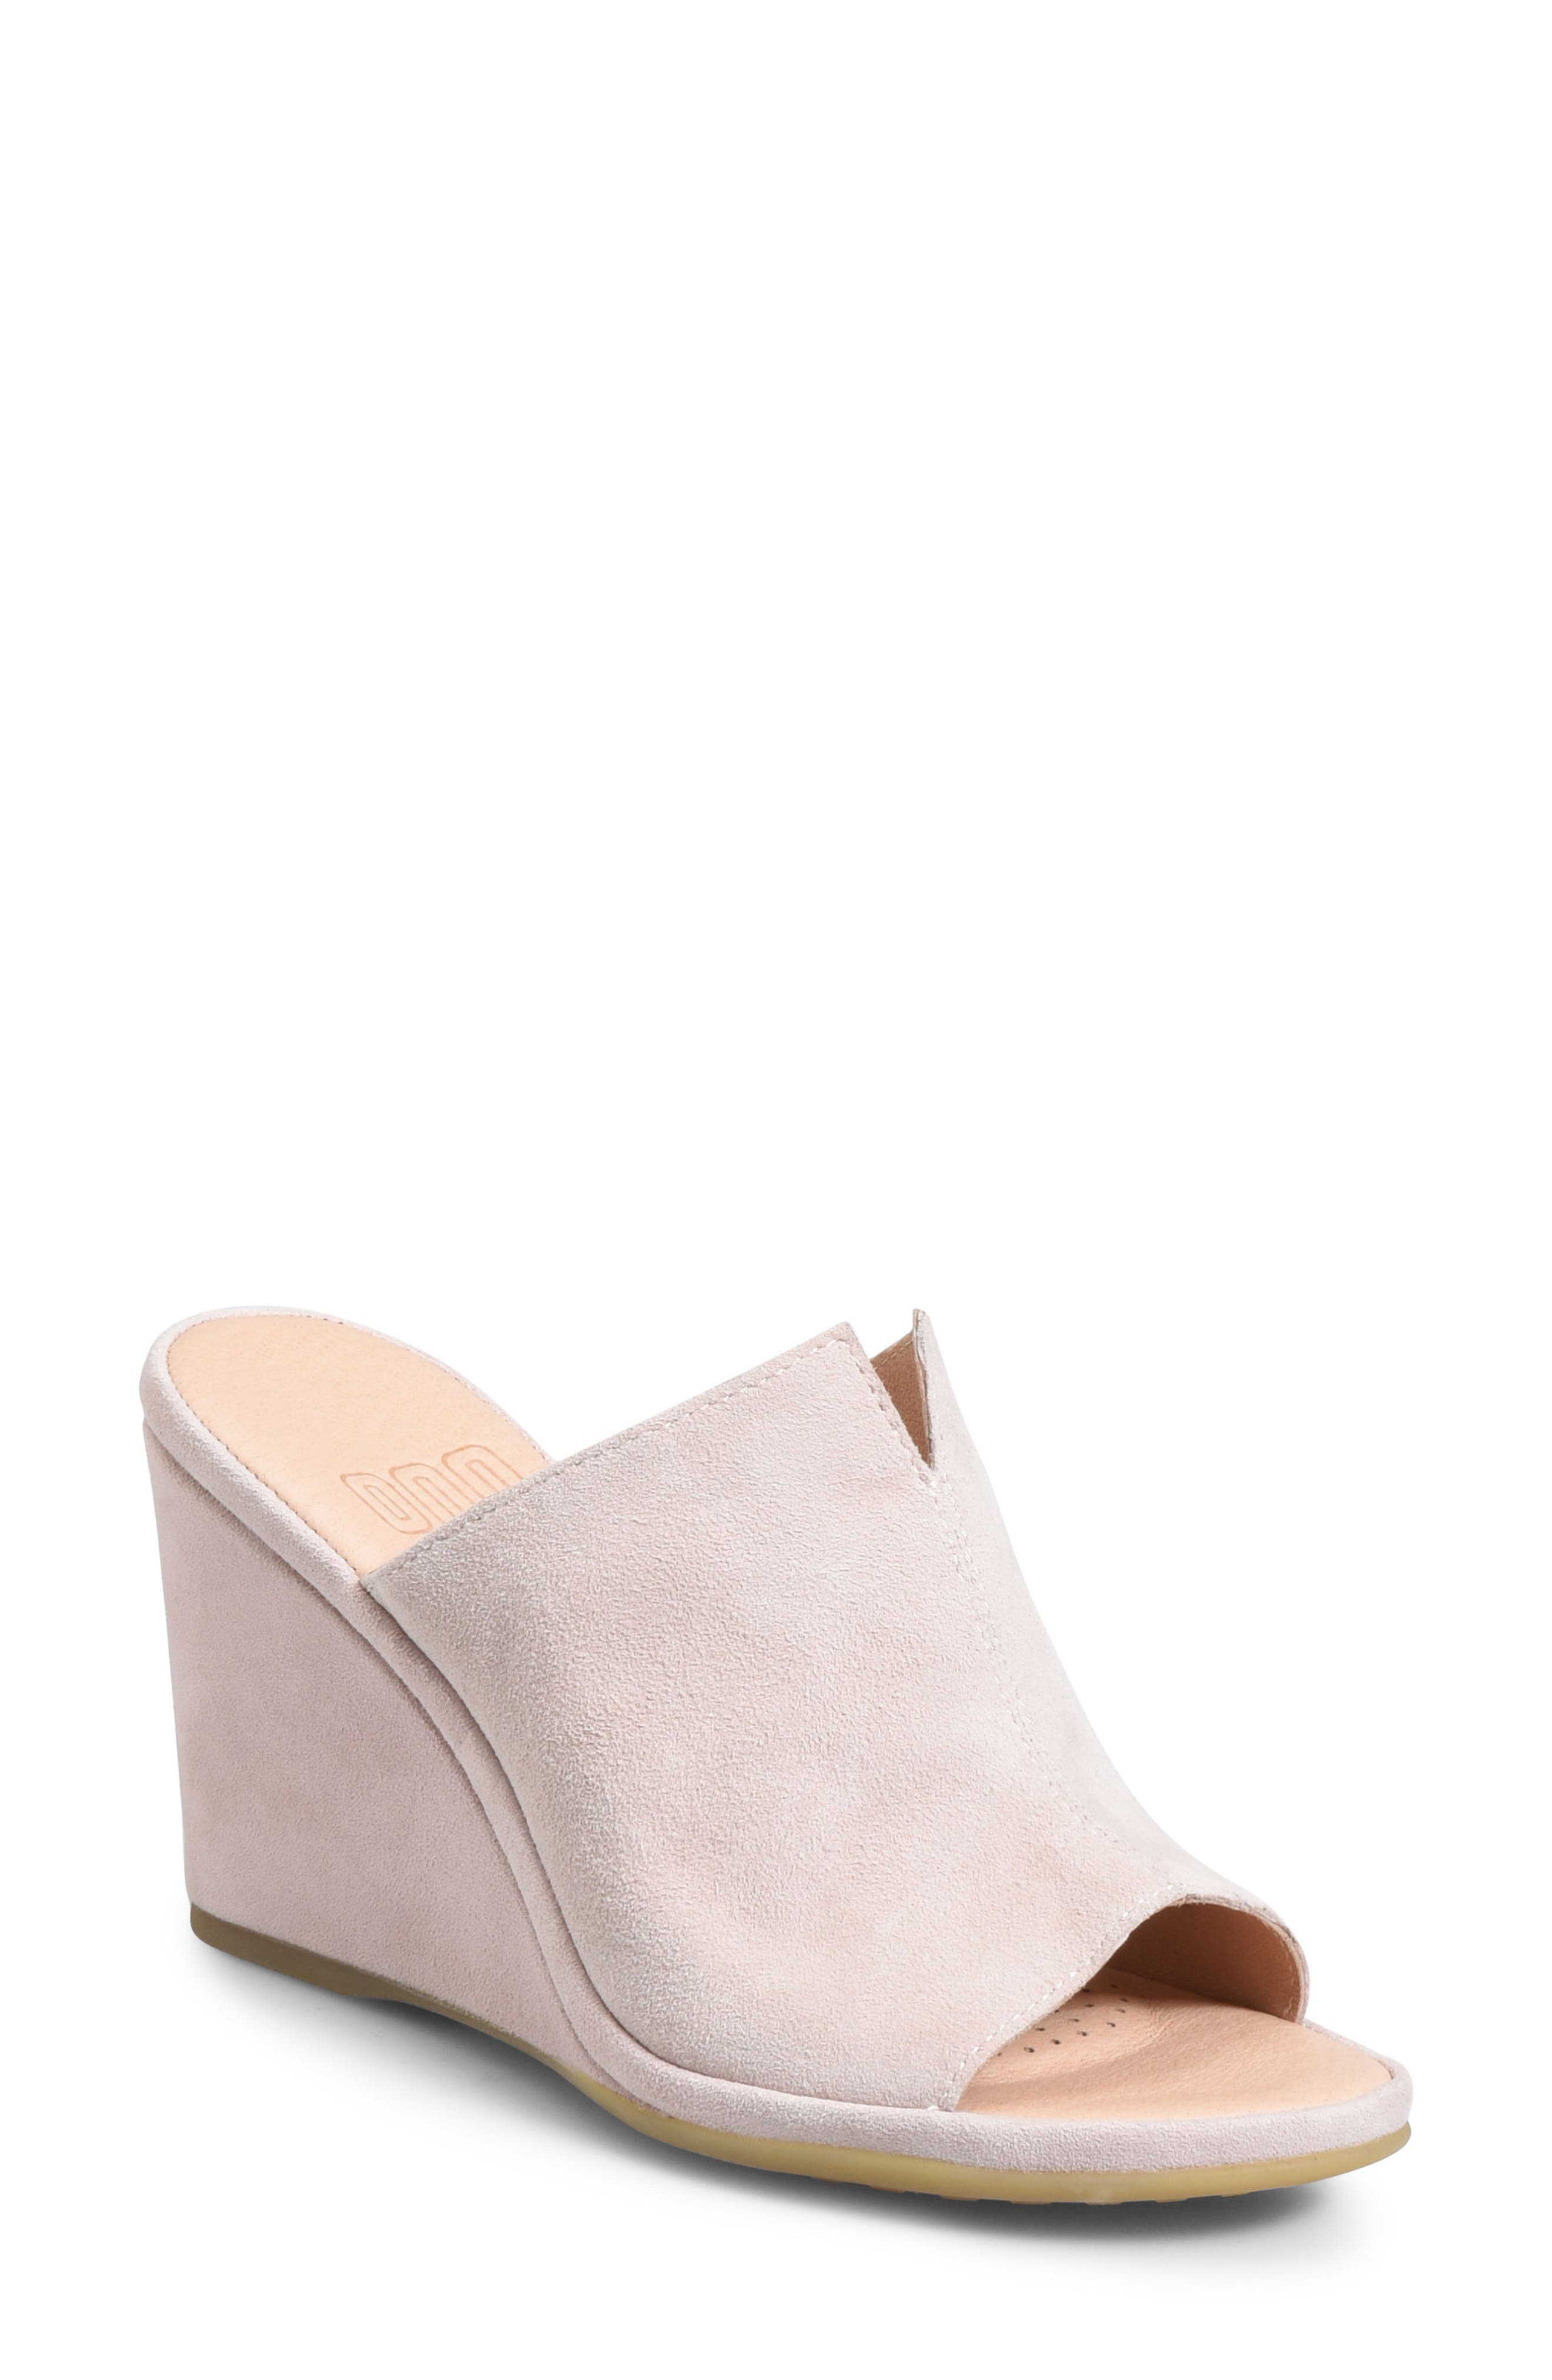 ONO, Hannah Wedge Mule, Main thumbnail 1, color, LIGHT PINK SUEDE